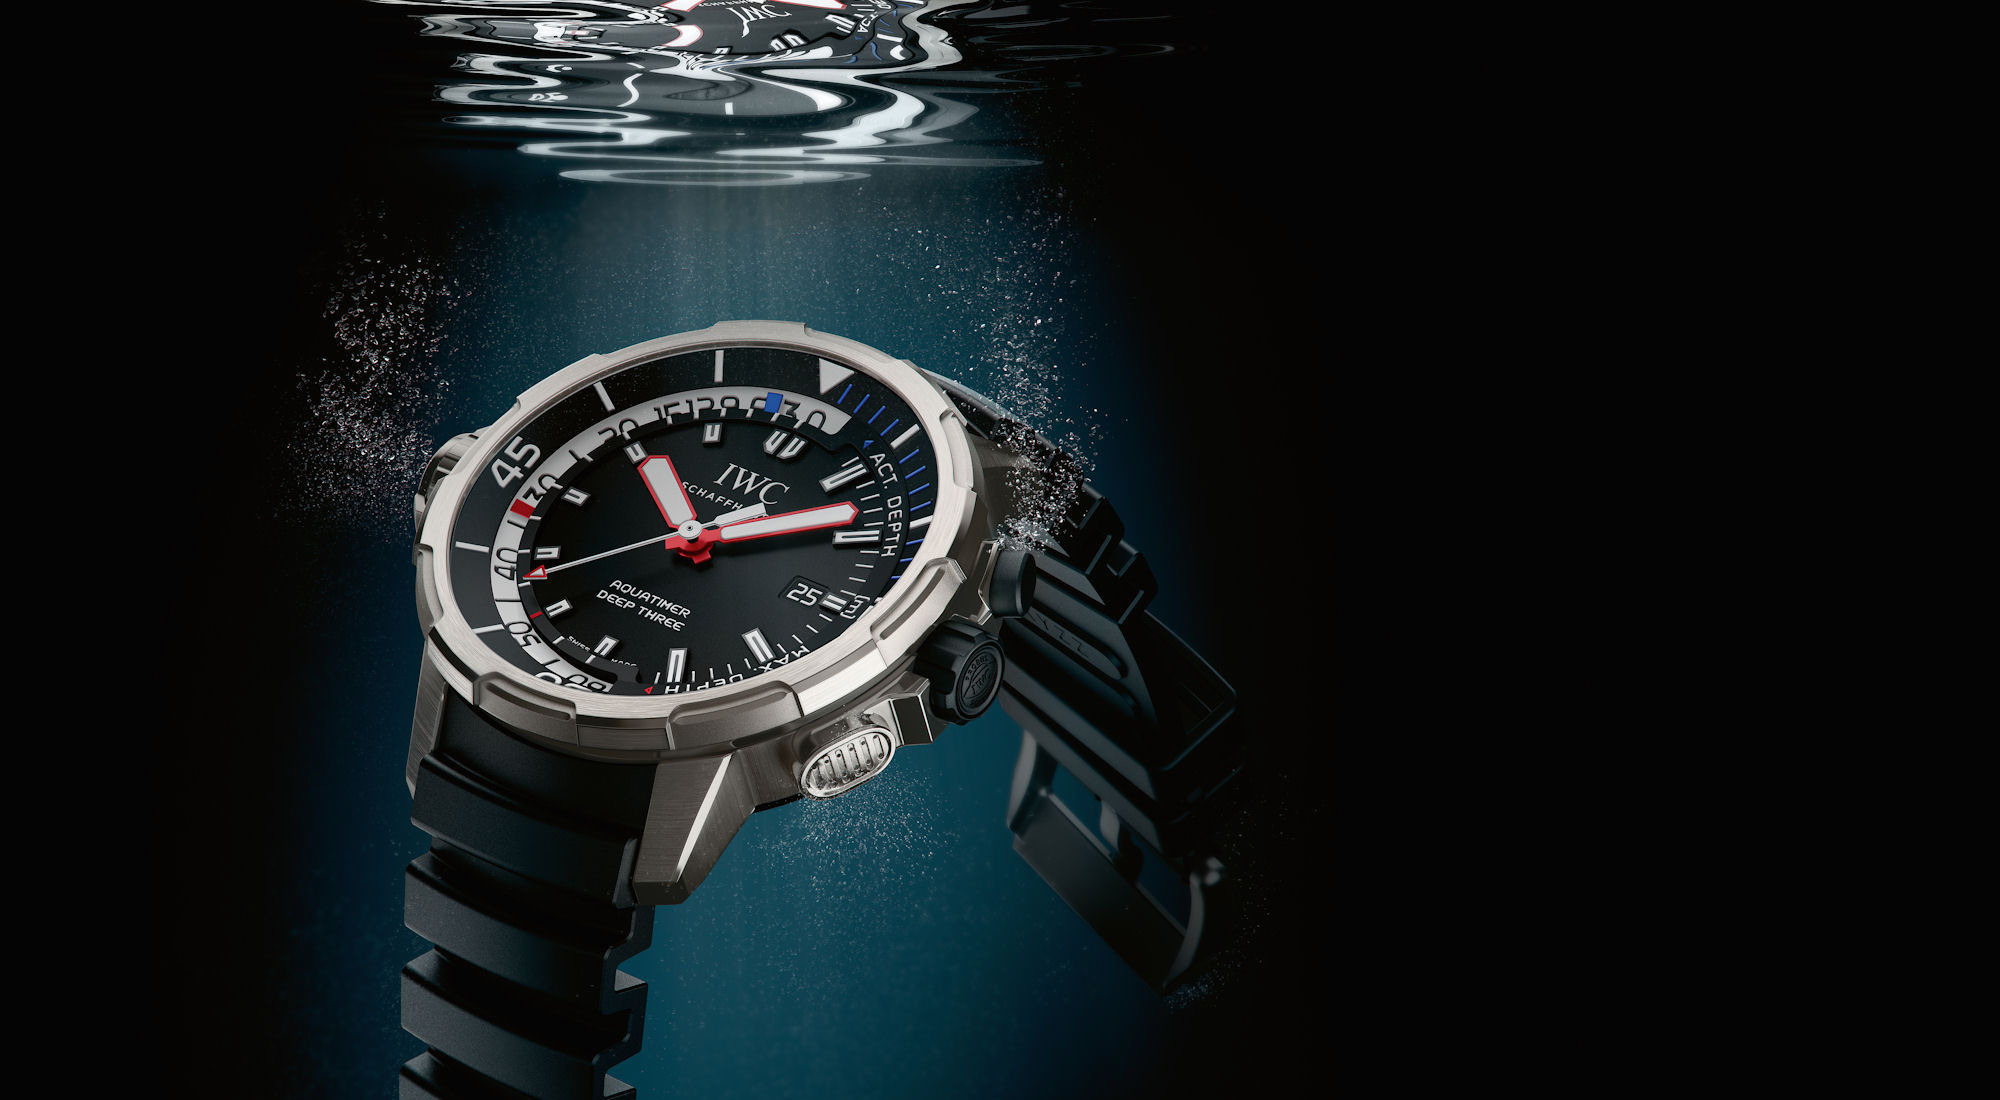 Original iwc aquatimer 2014 01